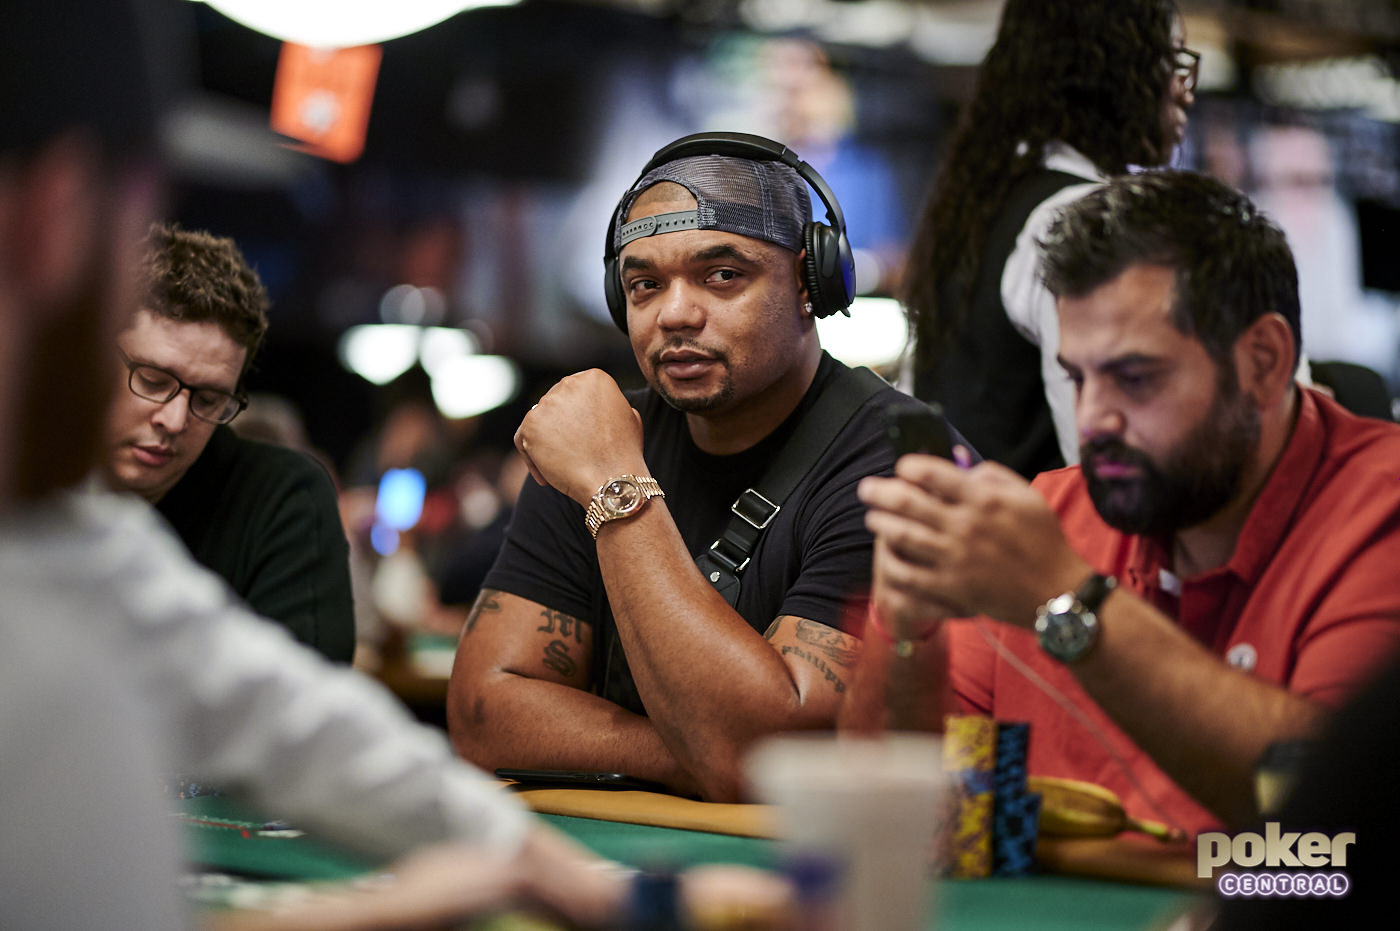 Former NFL star Richard Seymour competing in the world's biggest tournament for a chance to win $10 million.